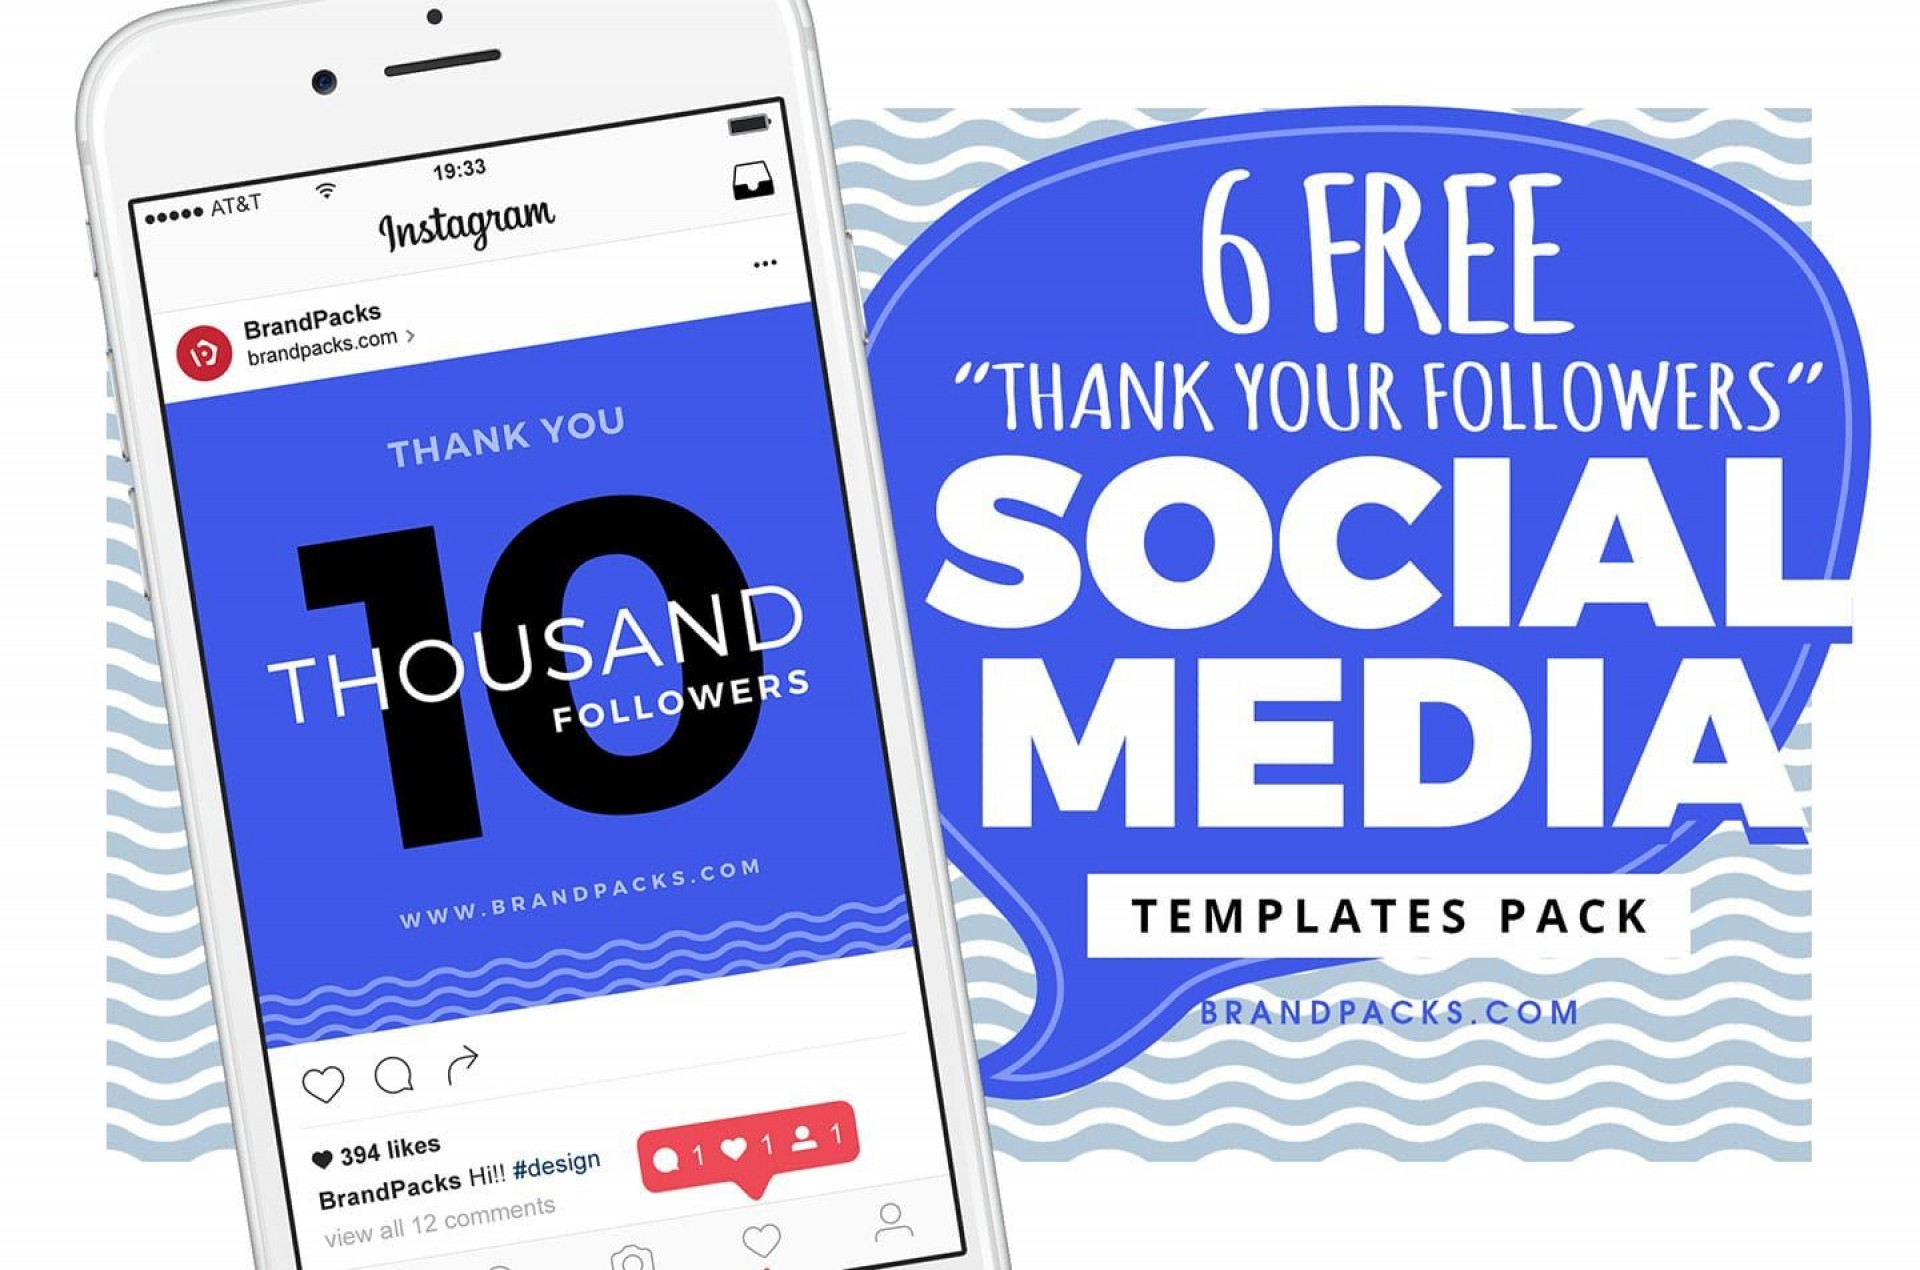 007 Unbelievable Social Media Template Free Psd Highest Clarity  Download1920